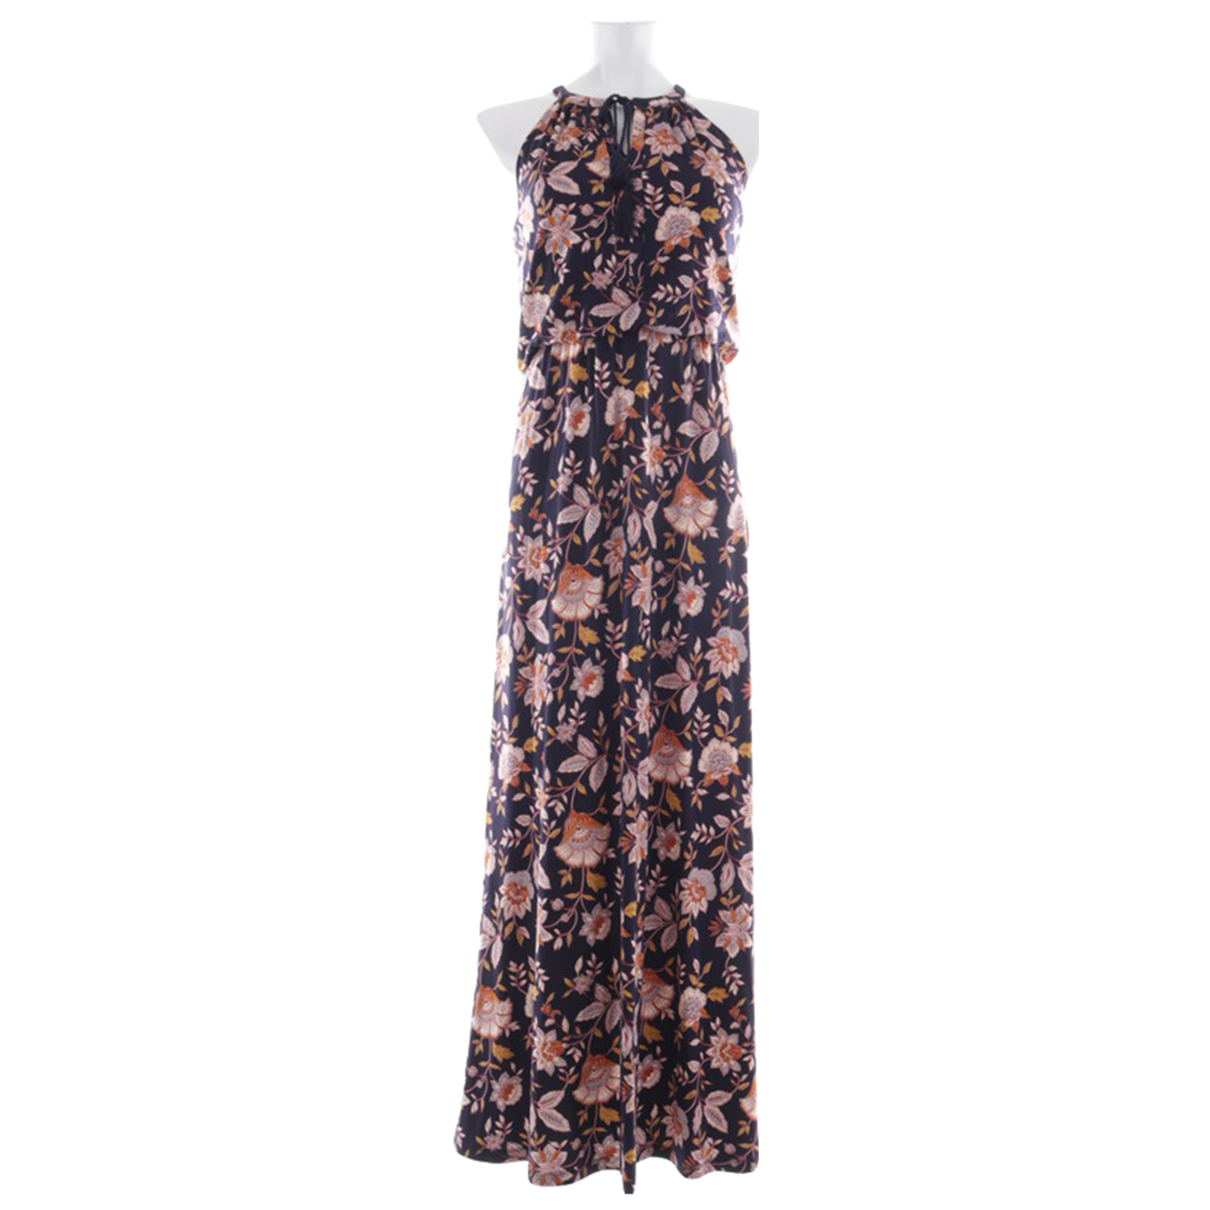 Rachel Zoe N Multicolour dress for Women S International